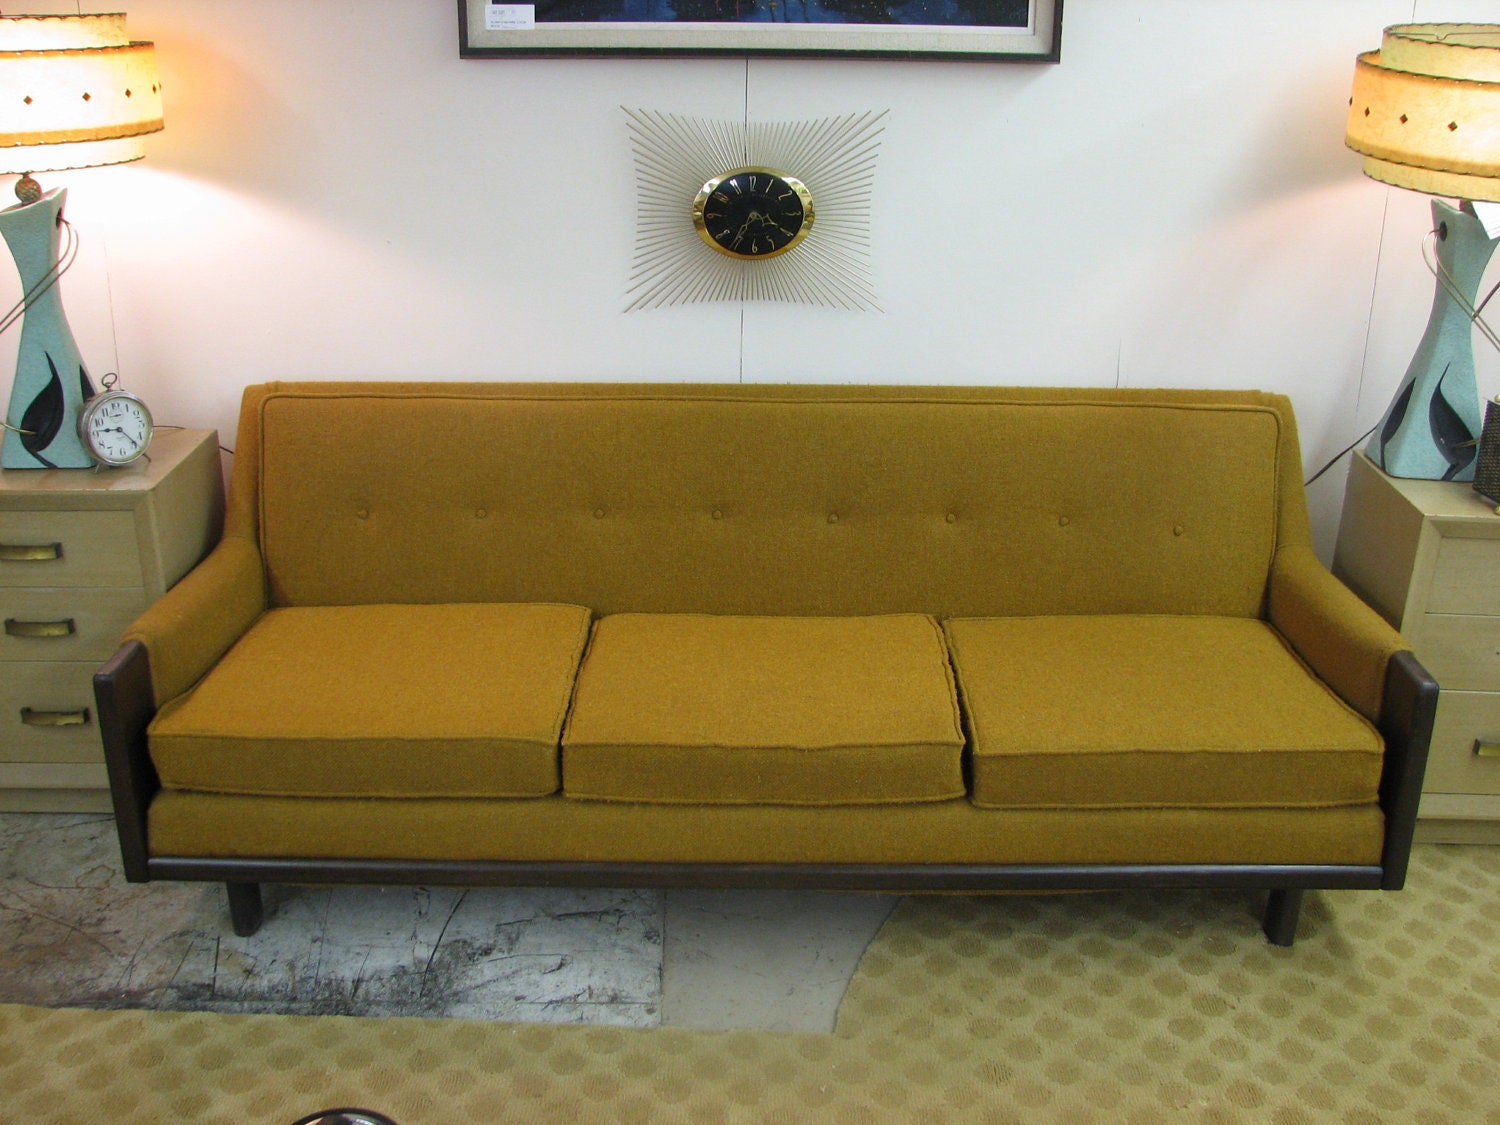 Mid century modern danish retro vintage upholstered sofa discounted shipping lower 48 states 🔎zoom